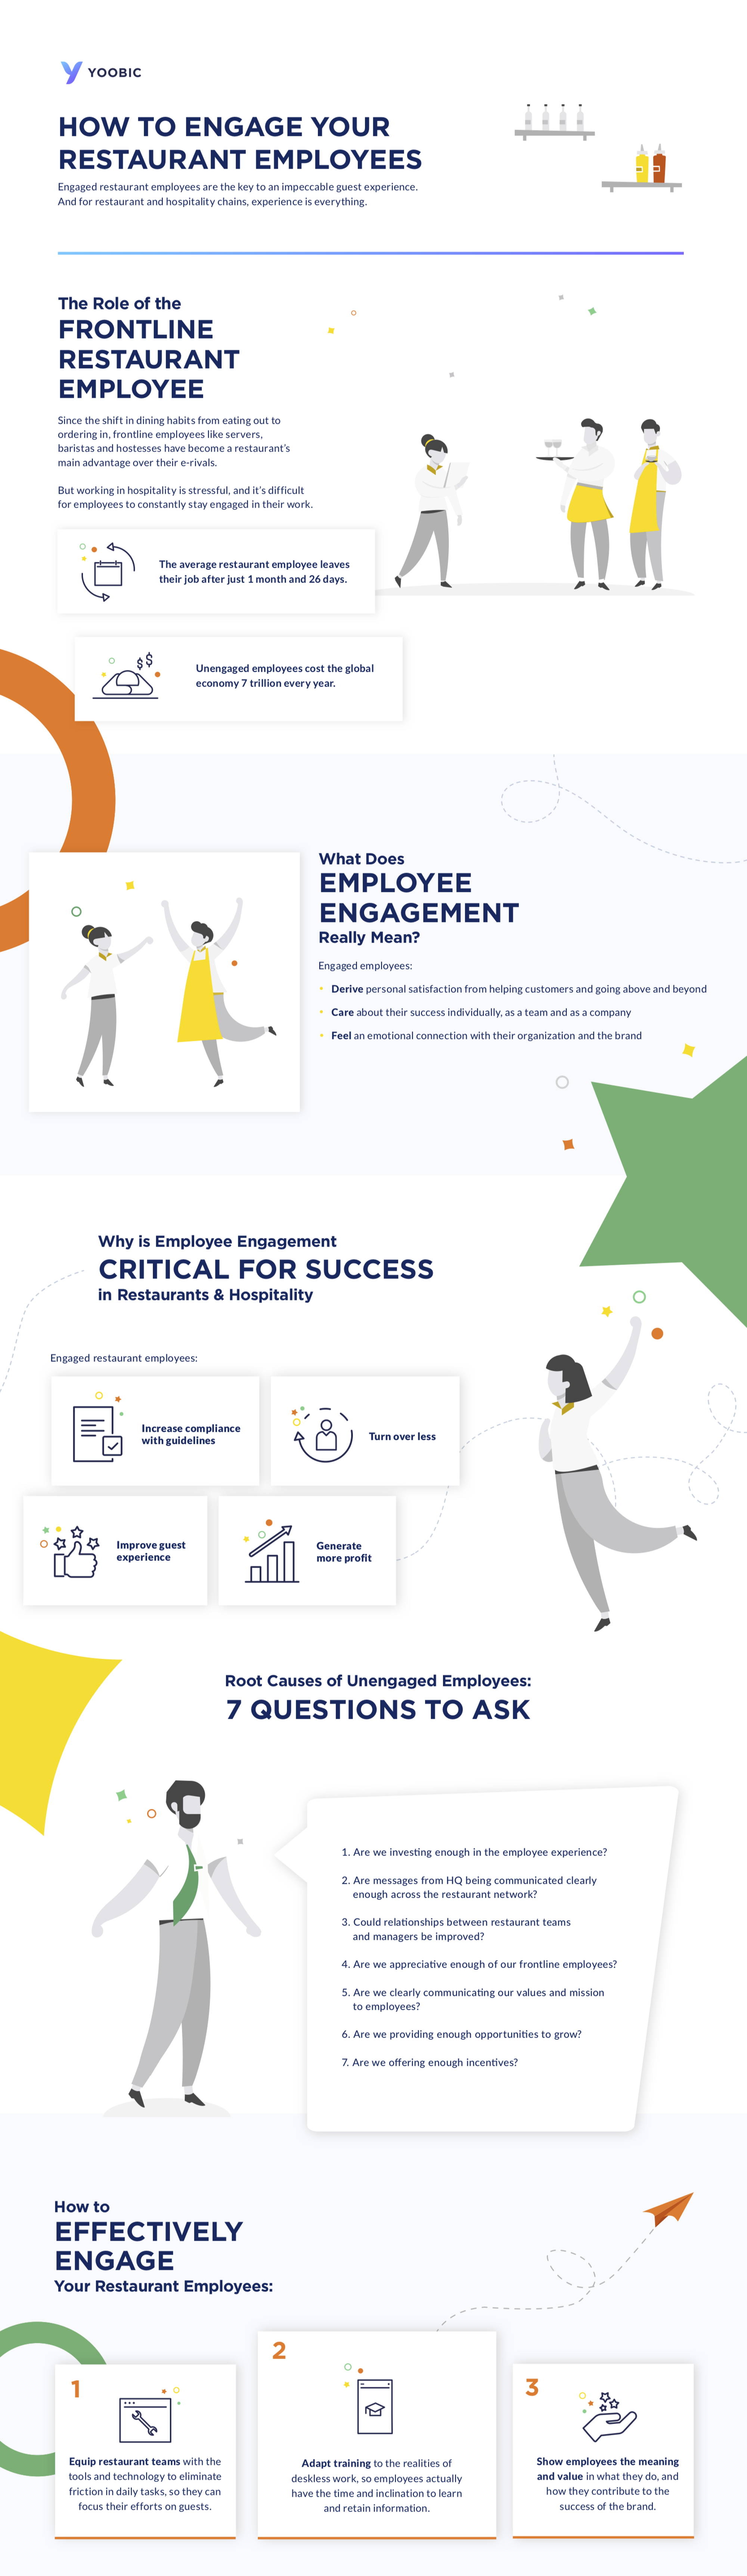 [Infographic] A Guide to Restaurant Employee Engagement